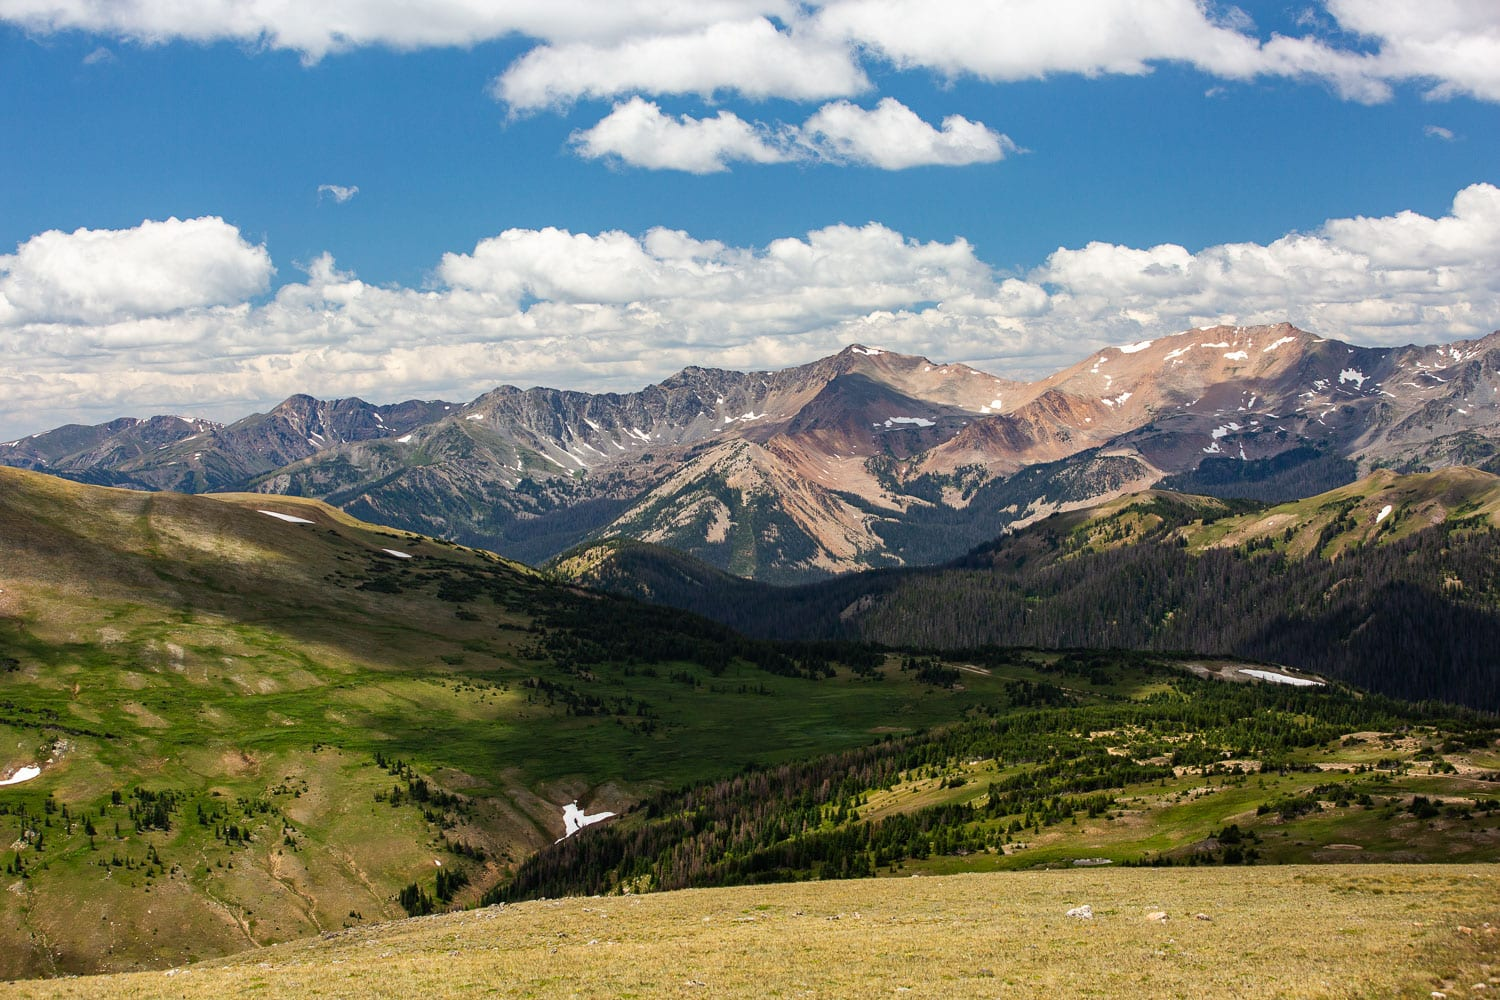 A view of the mountain peaks from Rocky Mountain National Park's trail ridge road.